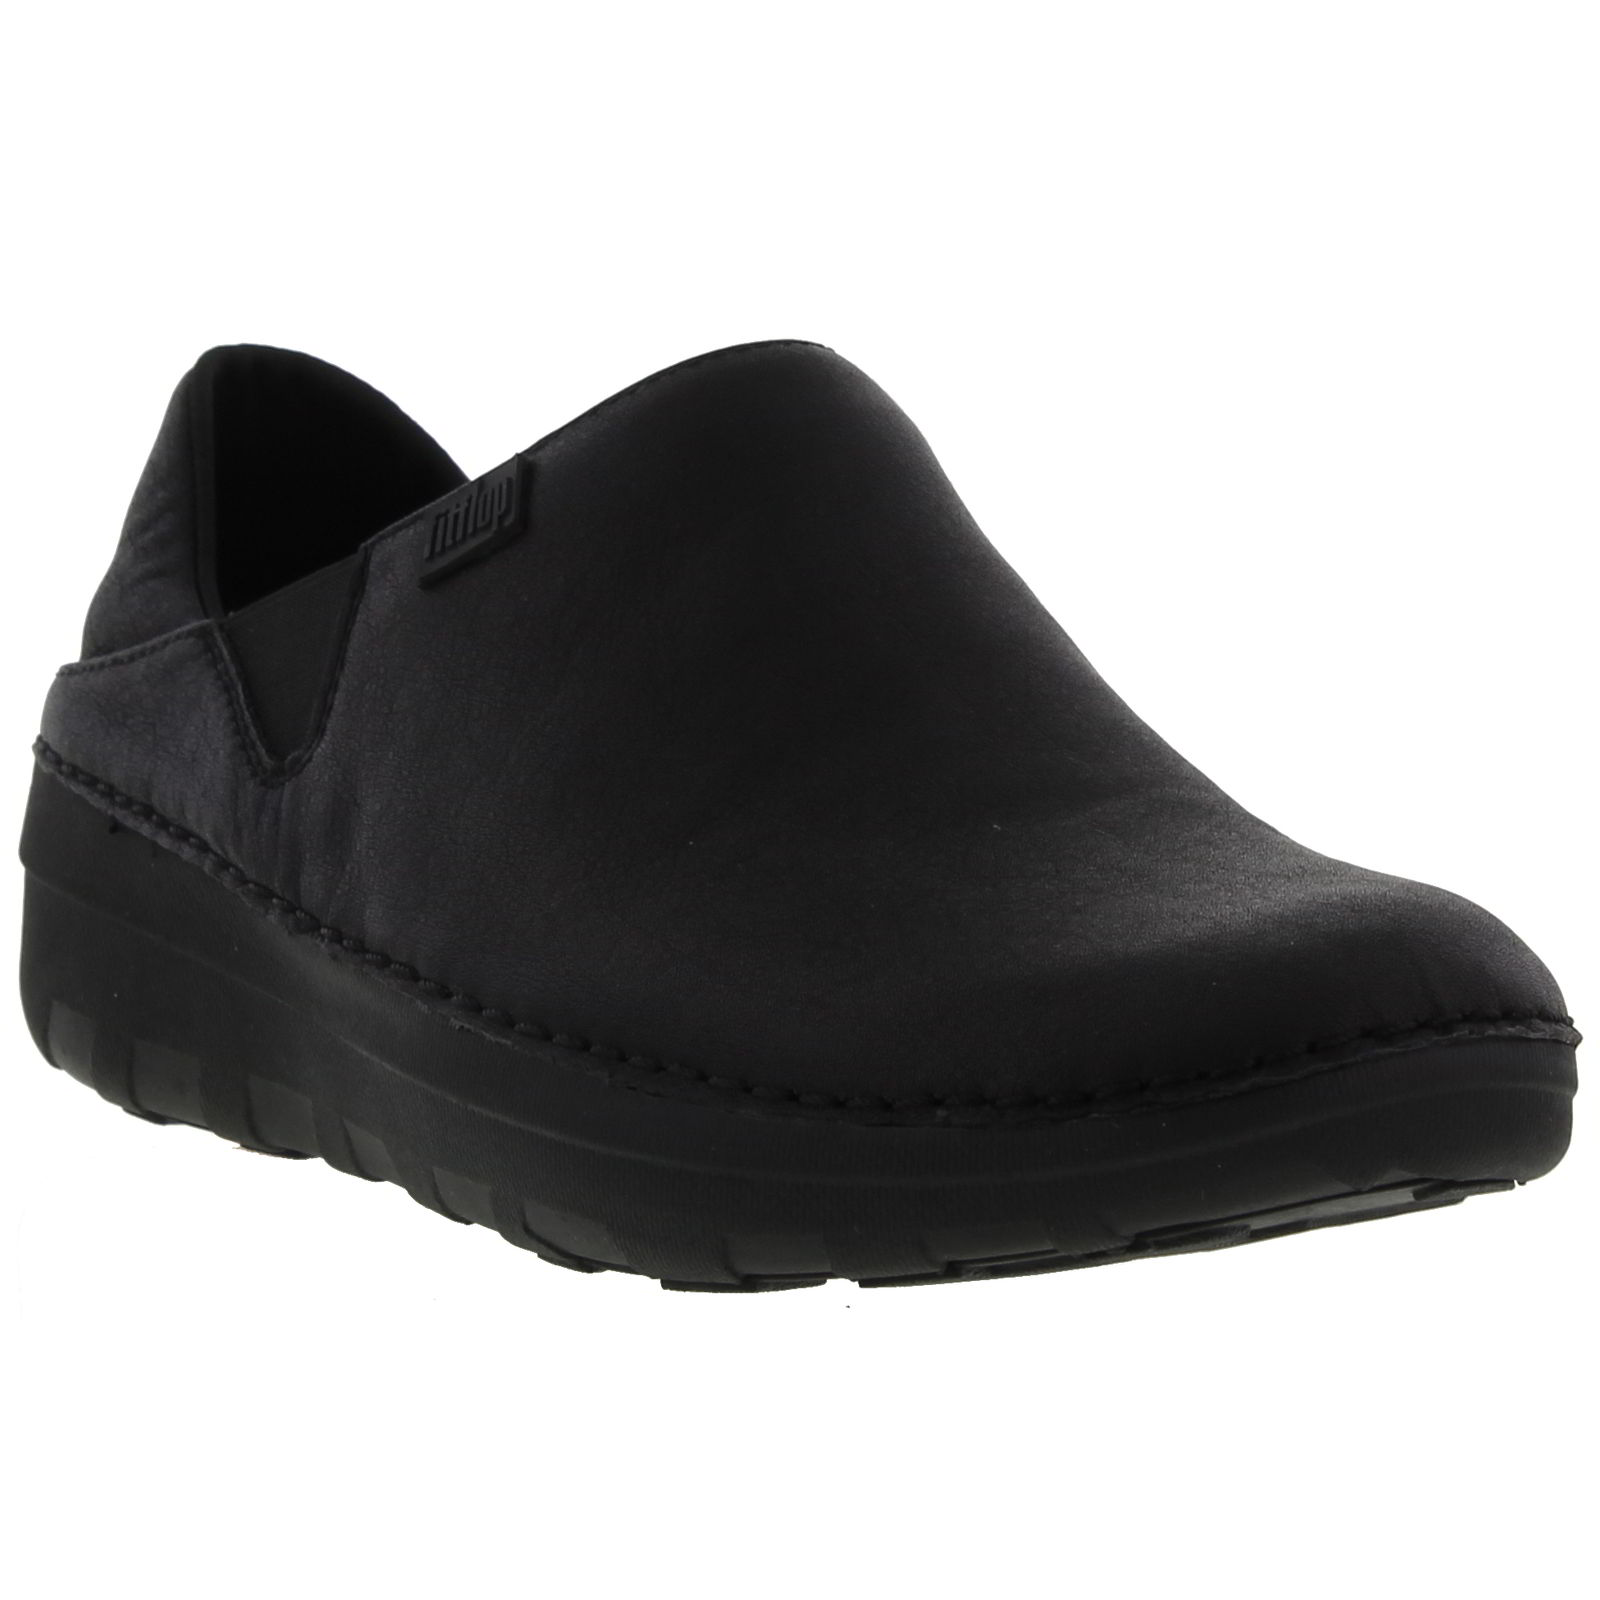 e44c35fb098a4a Details zu Fitflop Superloafer Womens Black leather Work Casual Loafers  Shoes Size 4-7